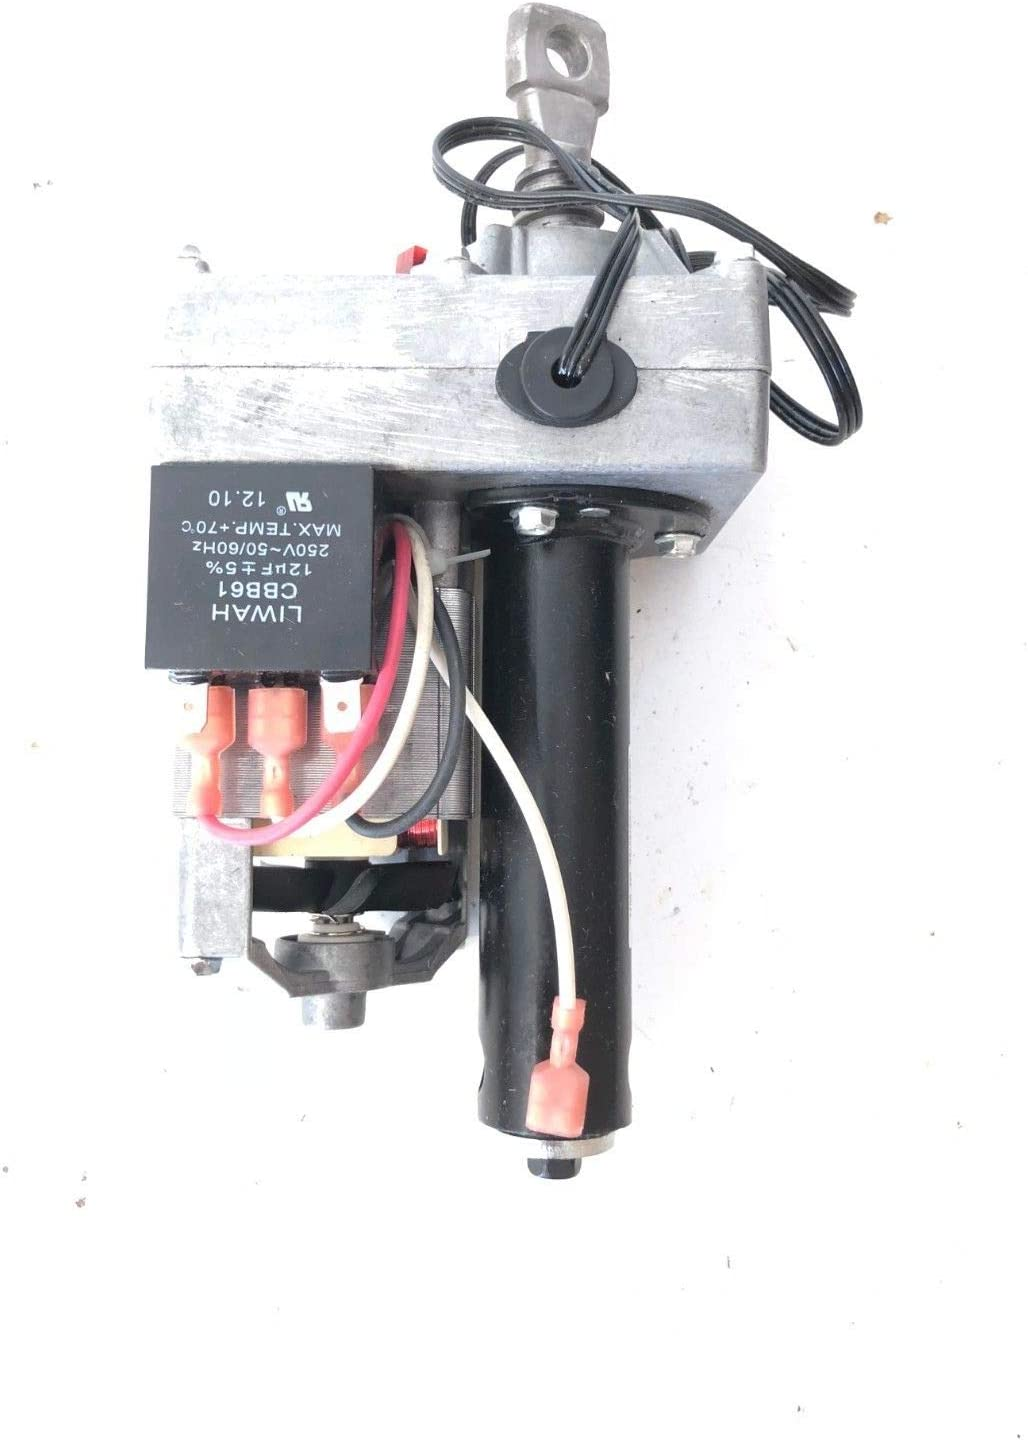 Inc Dc Drive Motor m-220530 Works with Image Proform Epic Reebok Weider Nordictrack Treadmill Icon Health /& Fitness